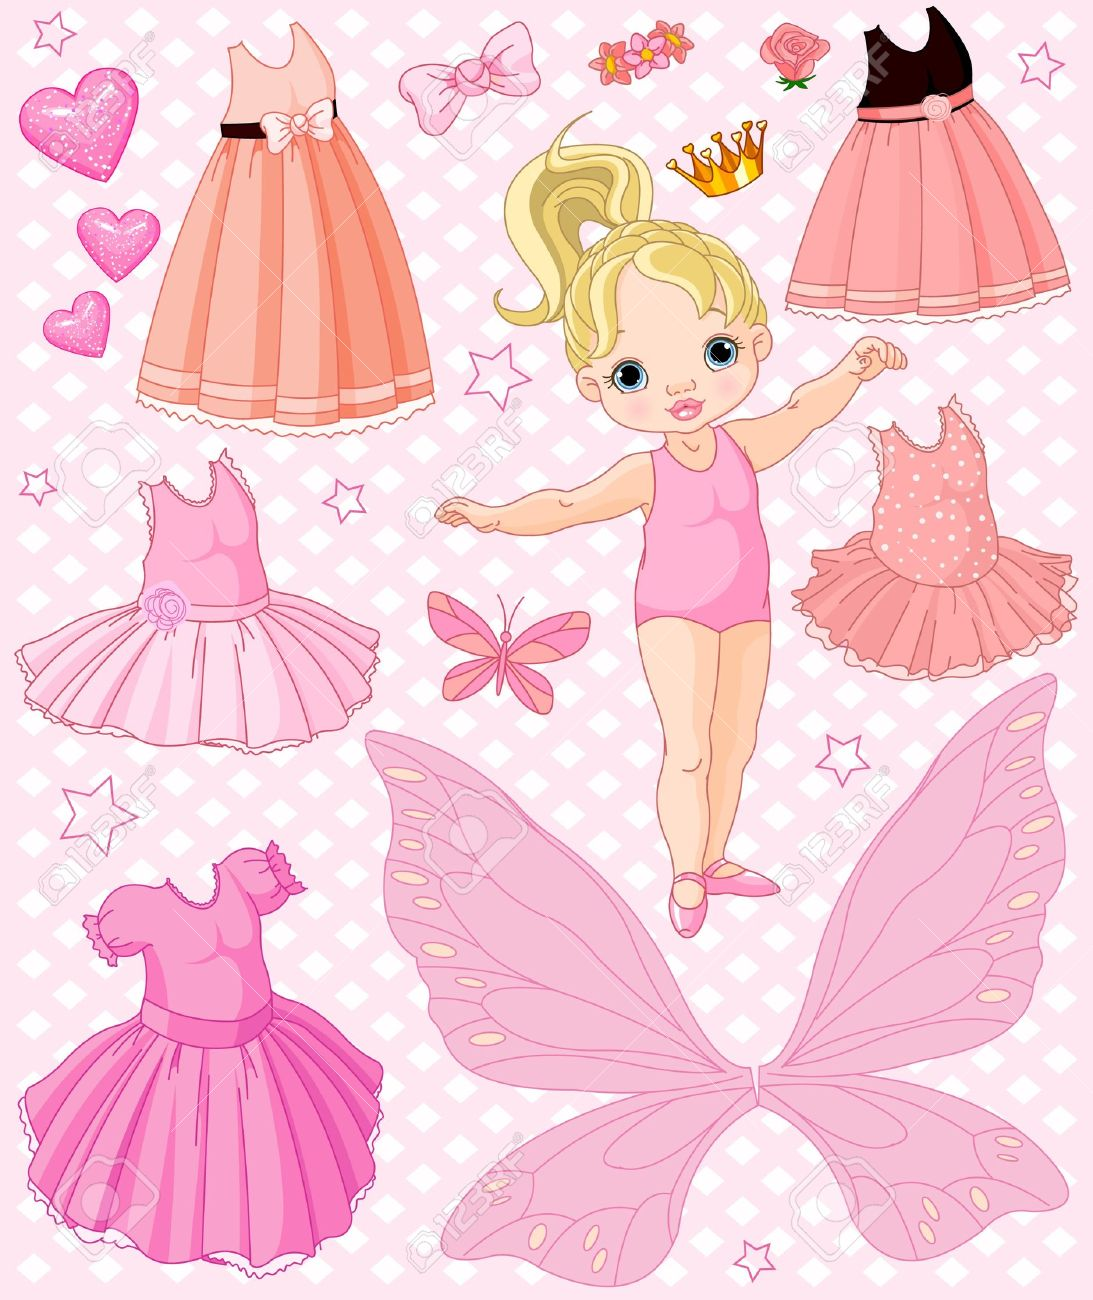 Paper Baby Doll with different ballet and princess dresses Stock Vector - 9346701